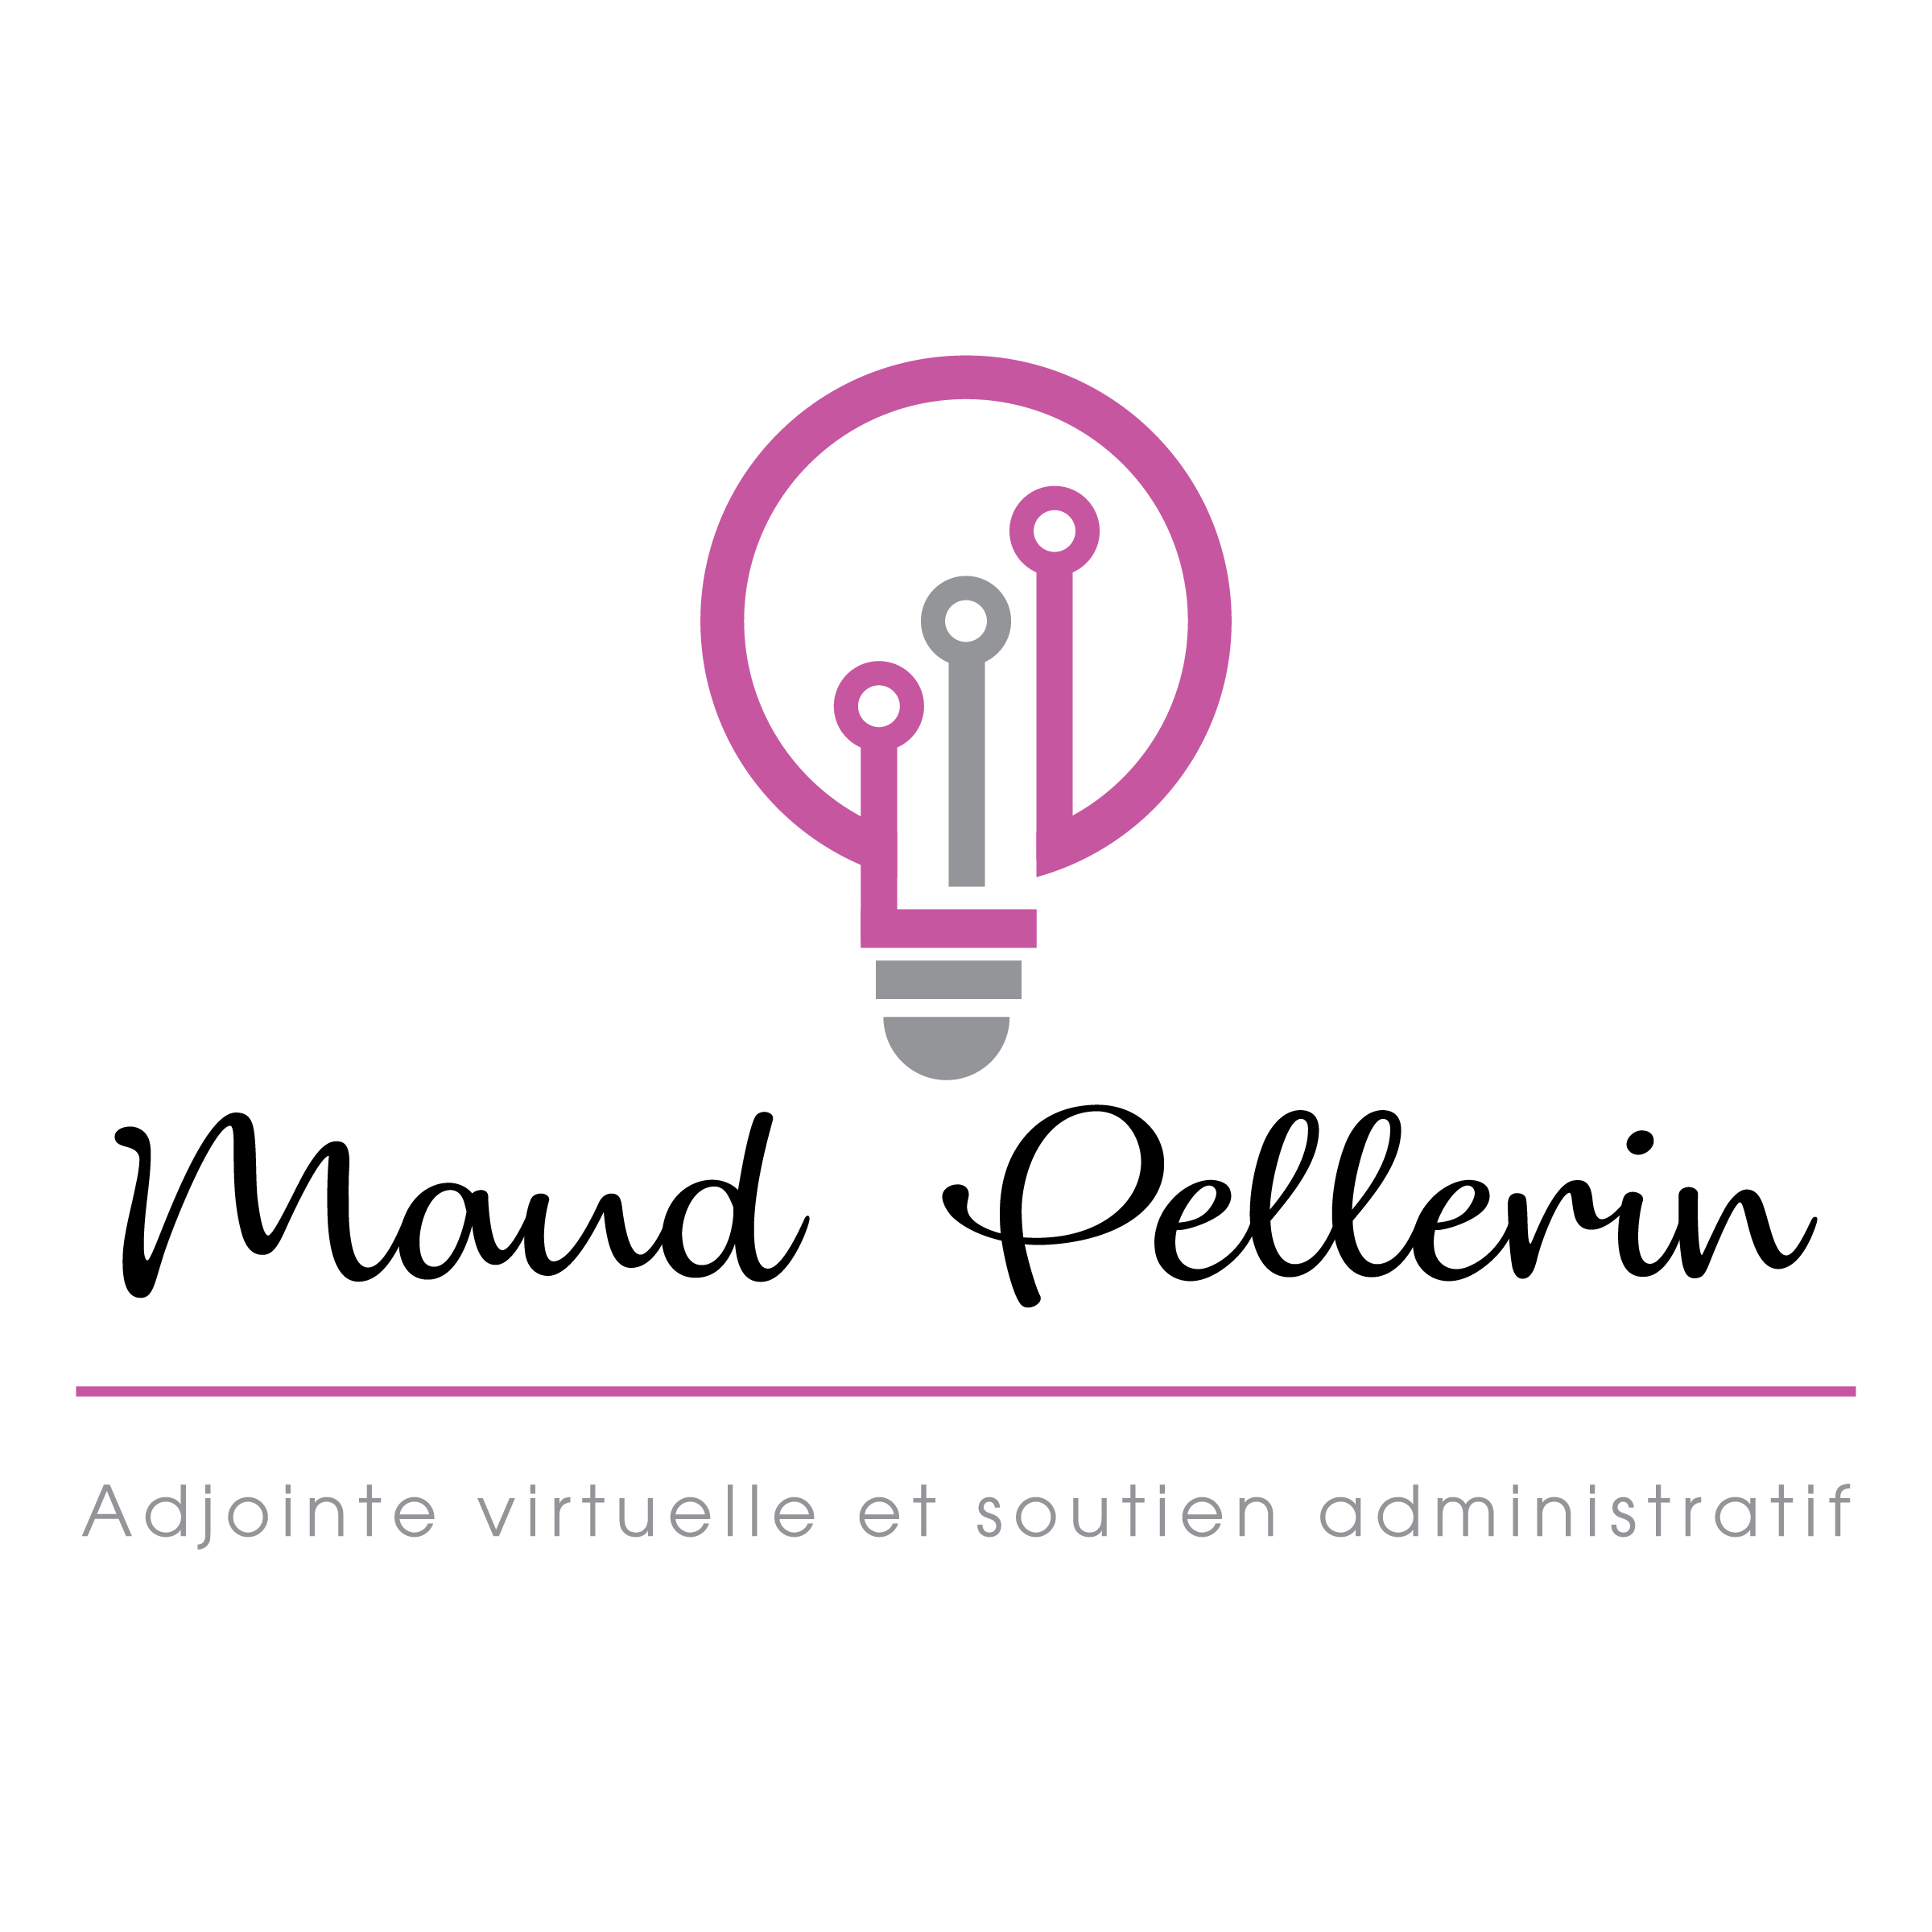 Maud Pellerin -Adjointe virtuelle